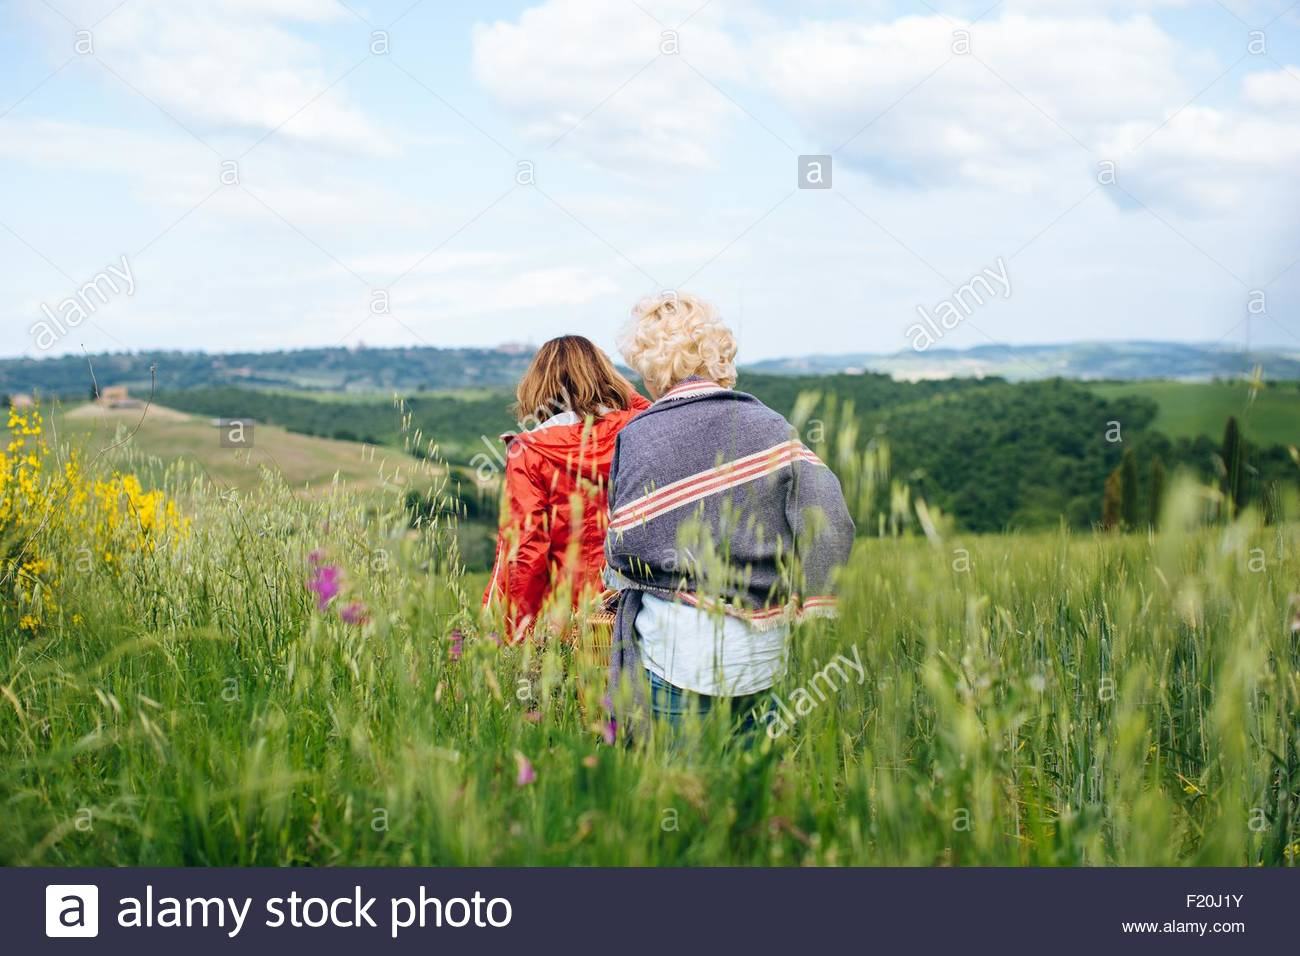 Rear view of two mature women strolling in wheatfield, Tuscany, Italy - Stock Image